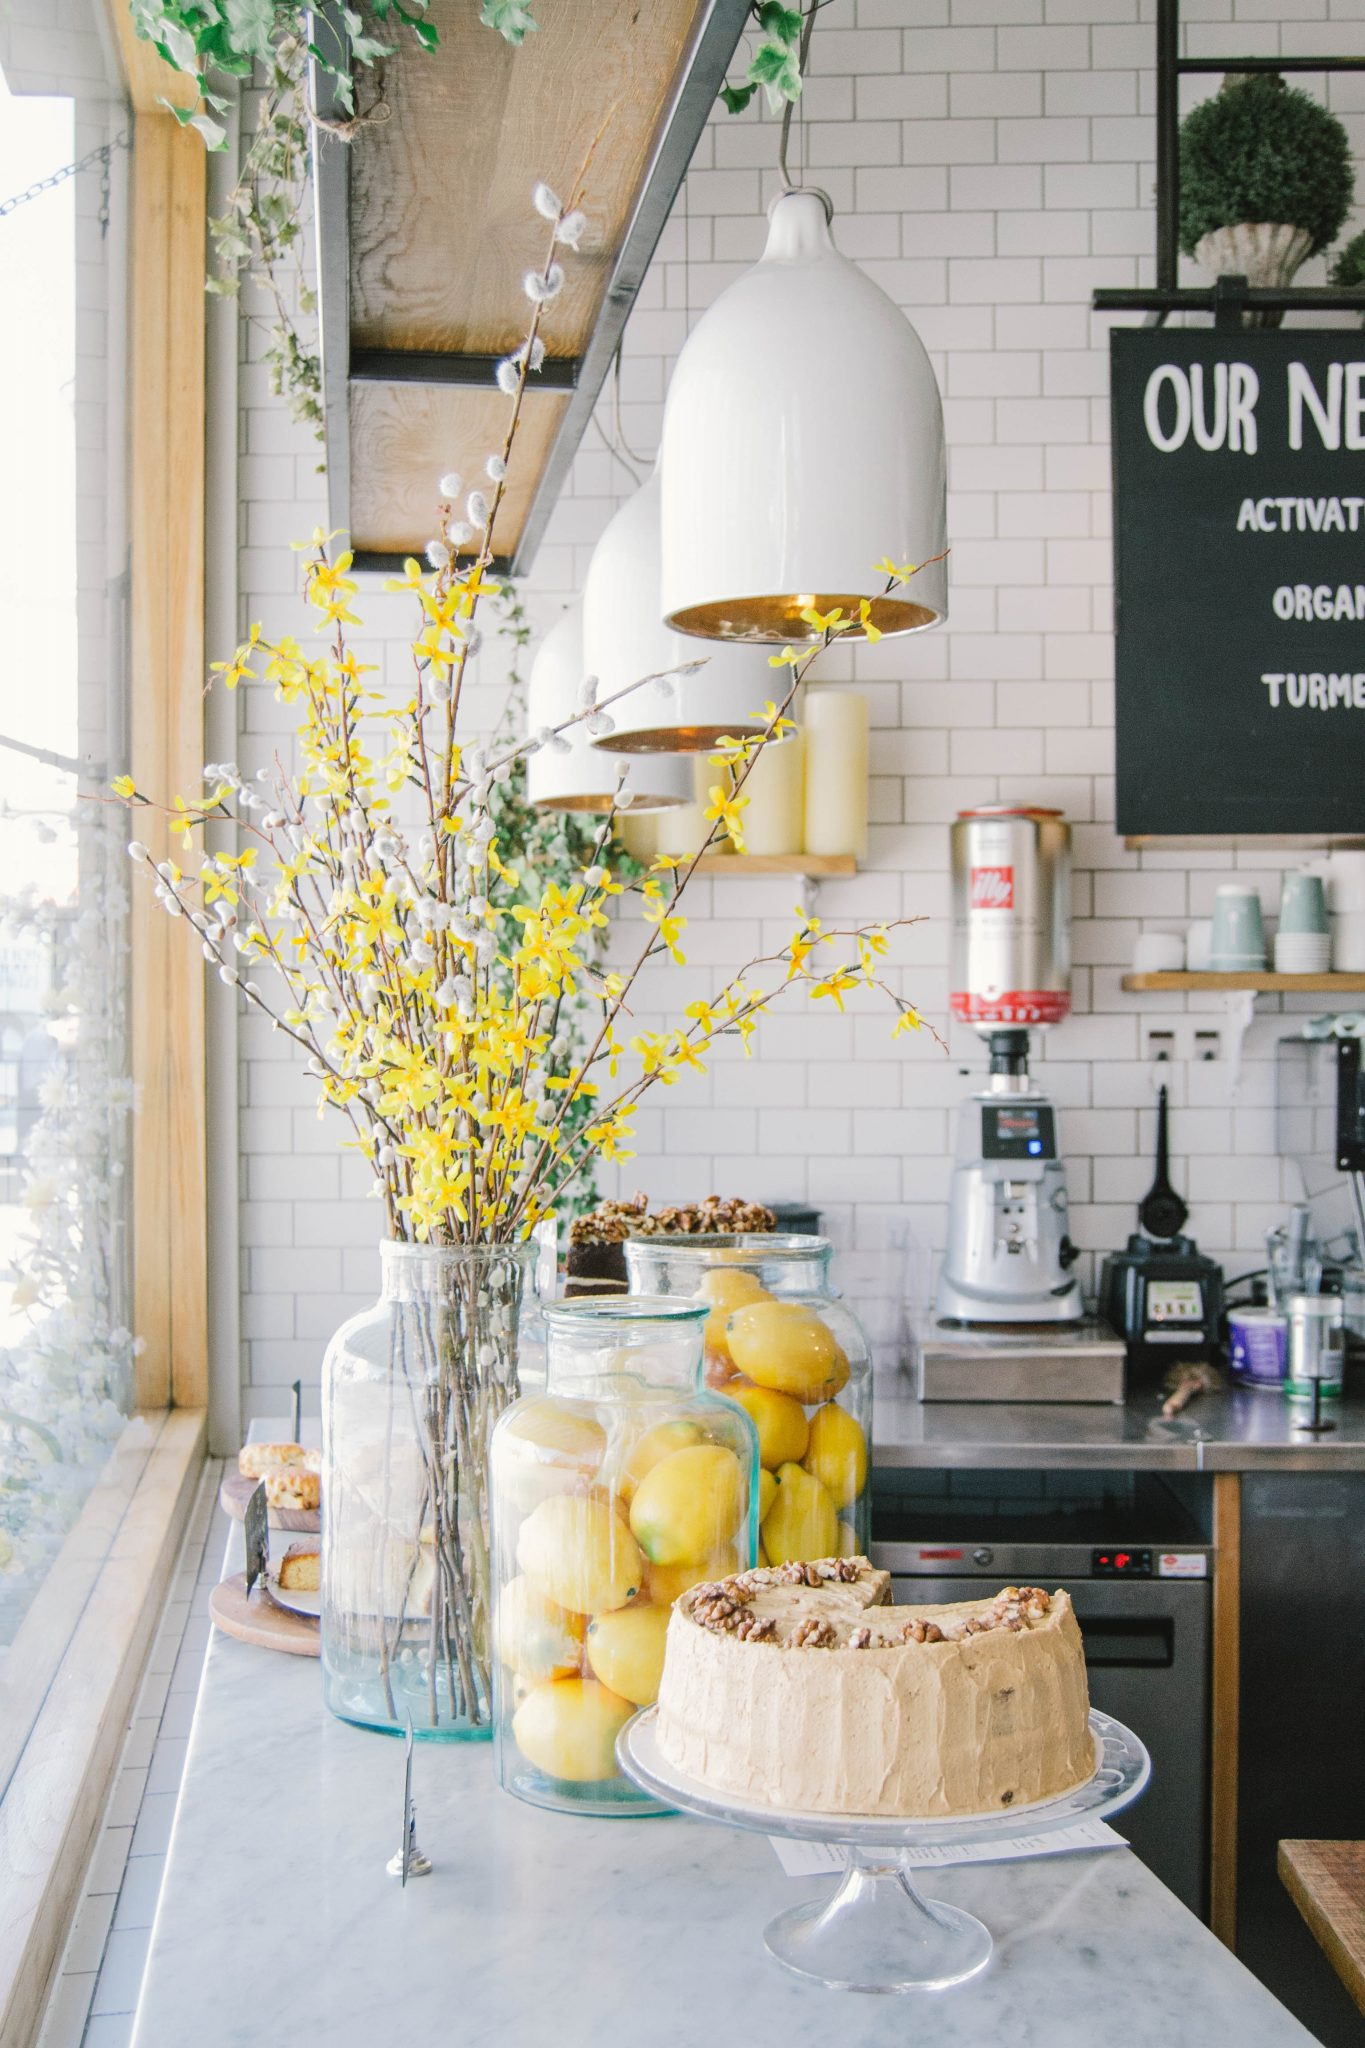 23 Impressive Kitchen Counter Decor (Ideas for Styling Your ...